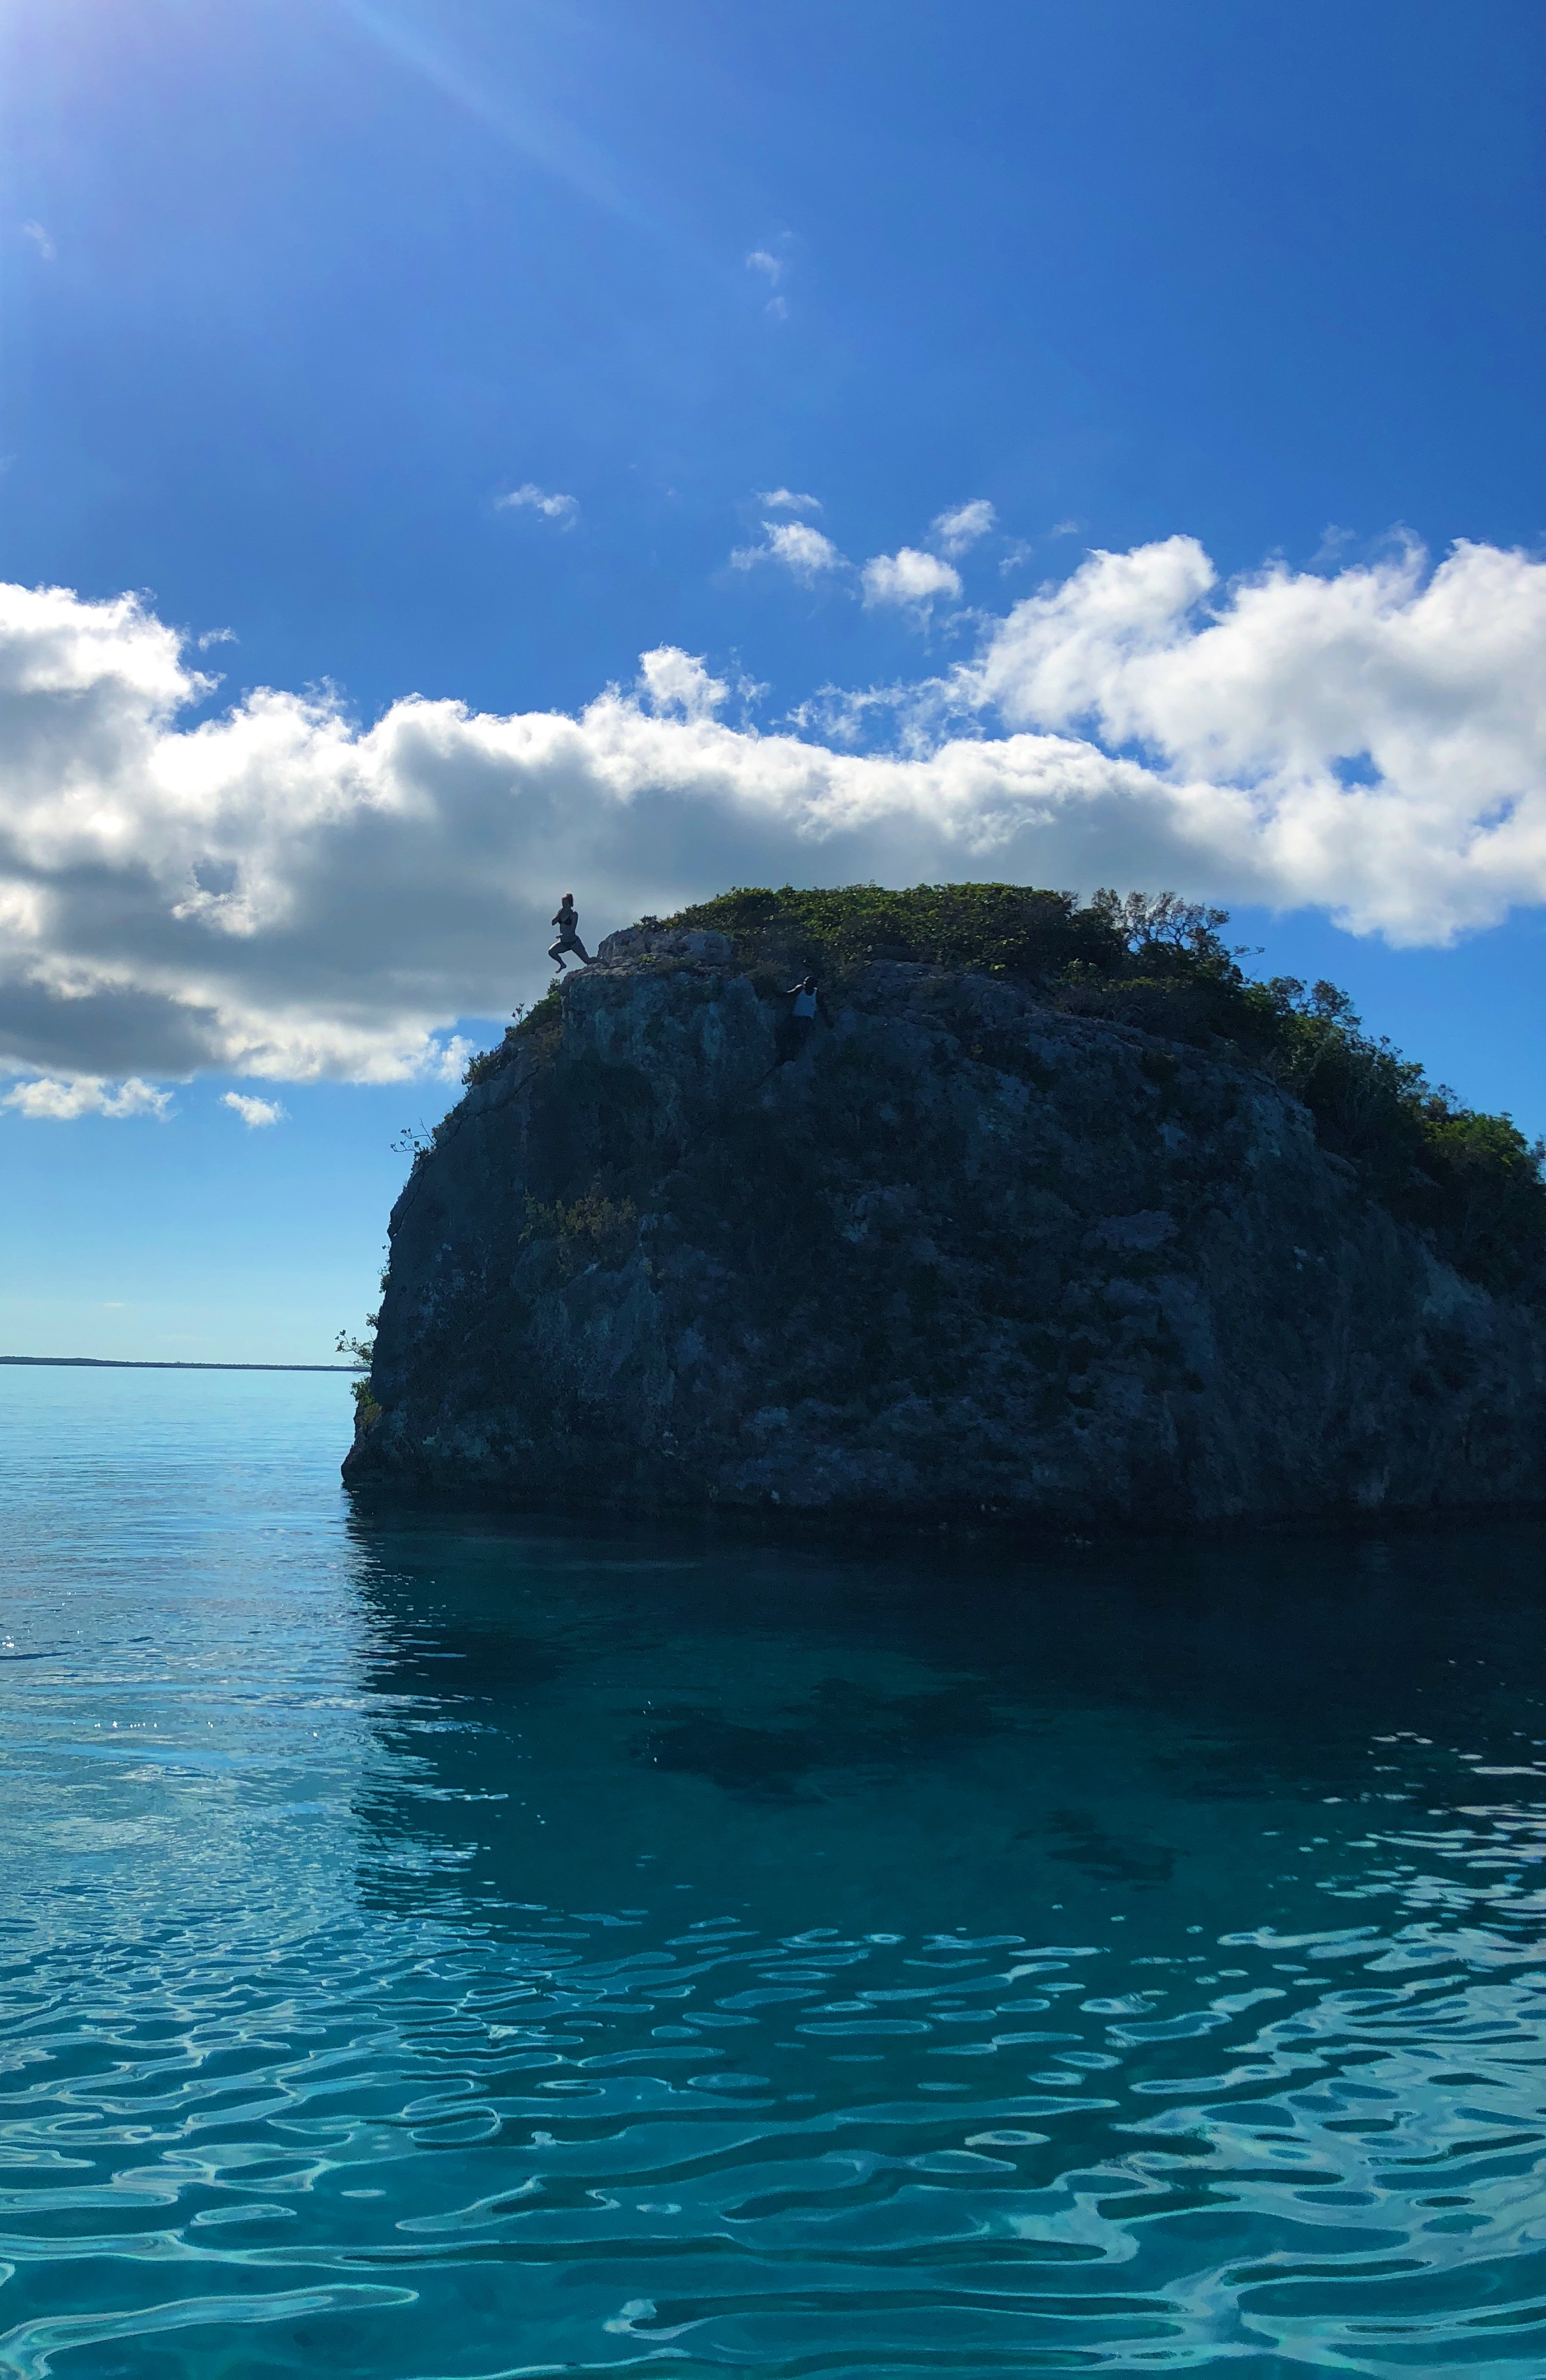 That's me... jumping off a 40 ft. cliff in the Bahamas